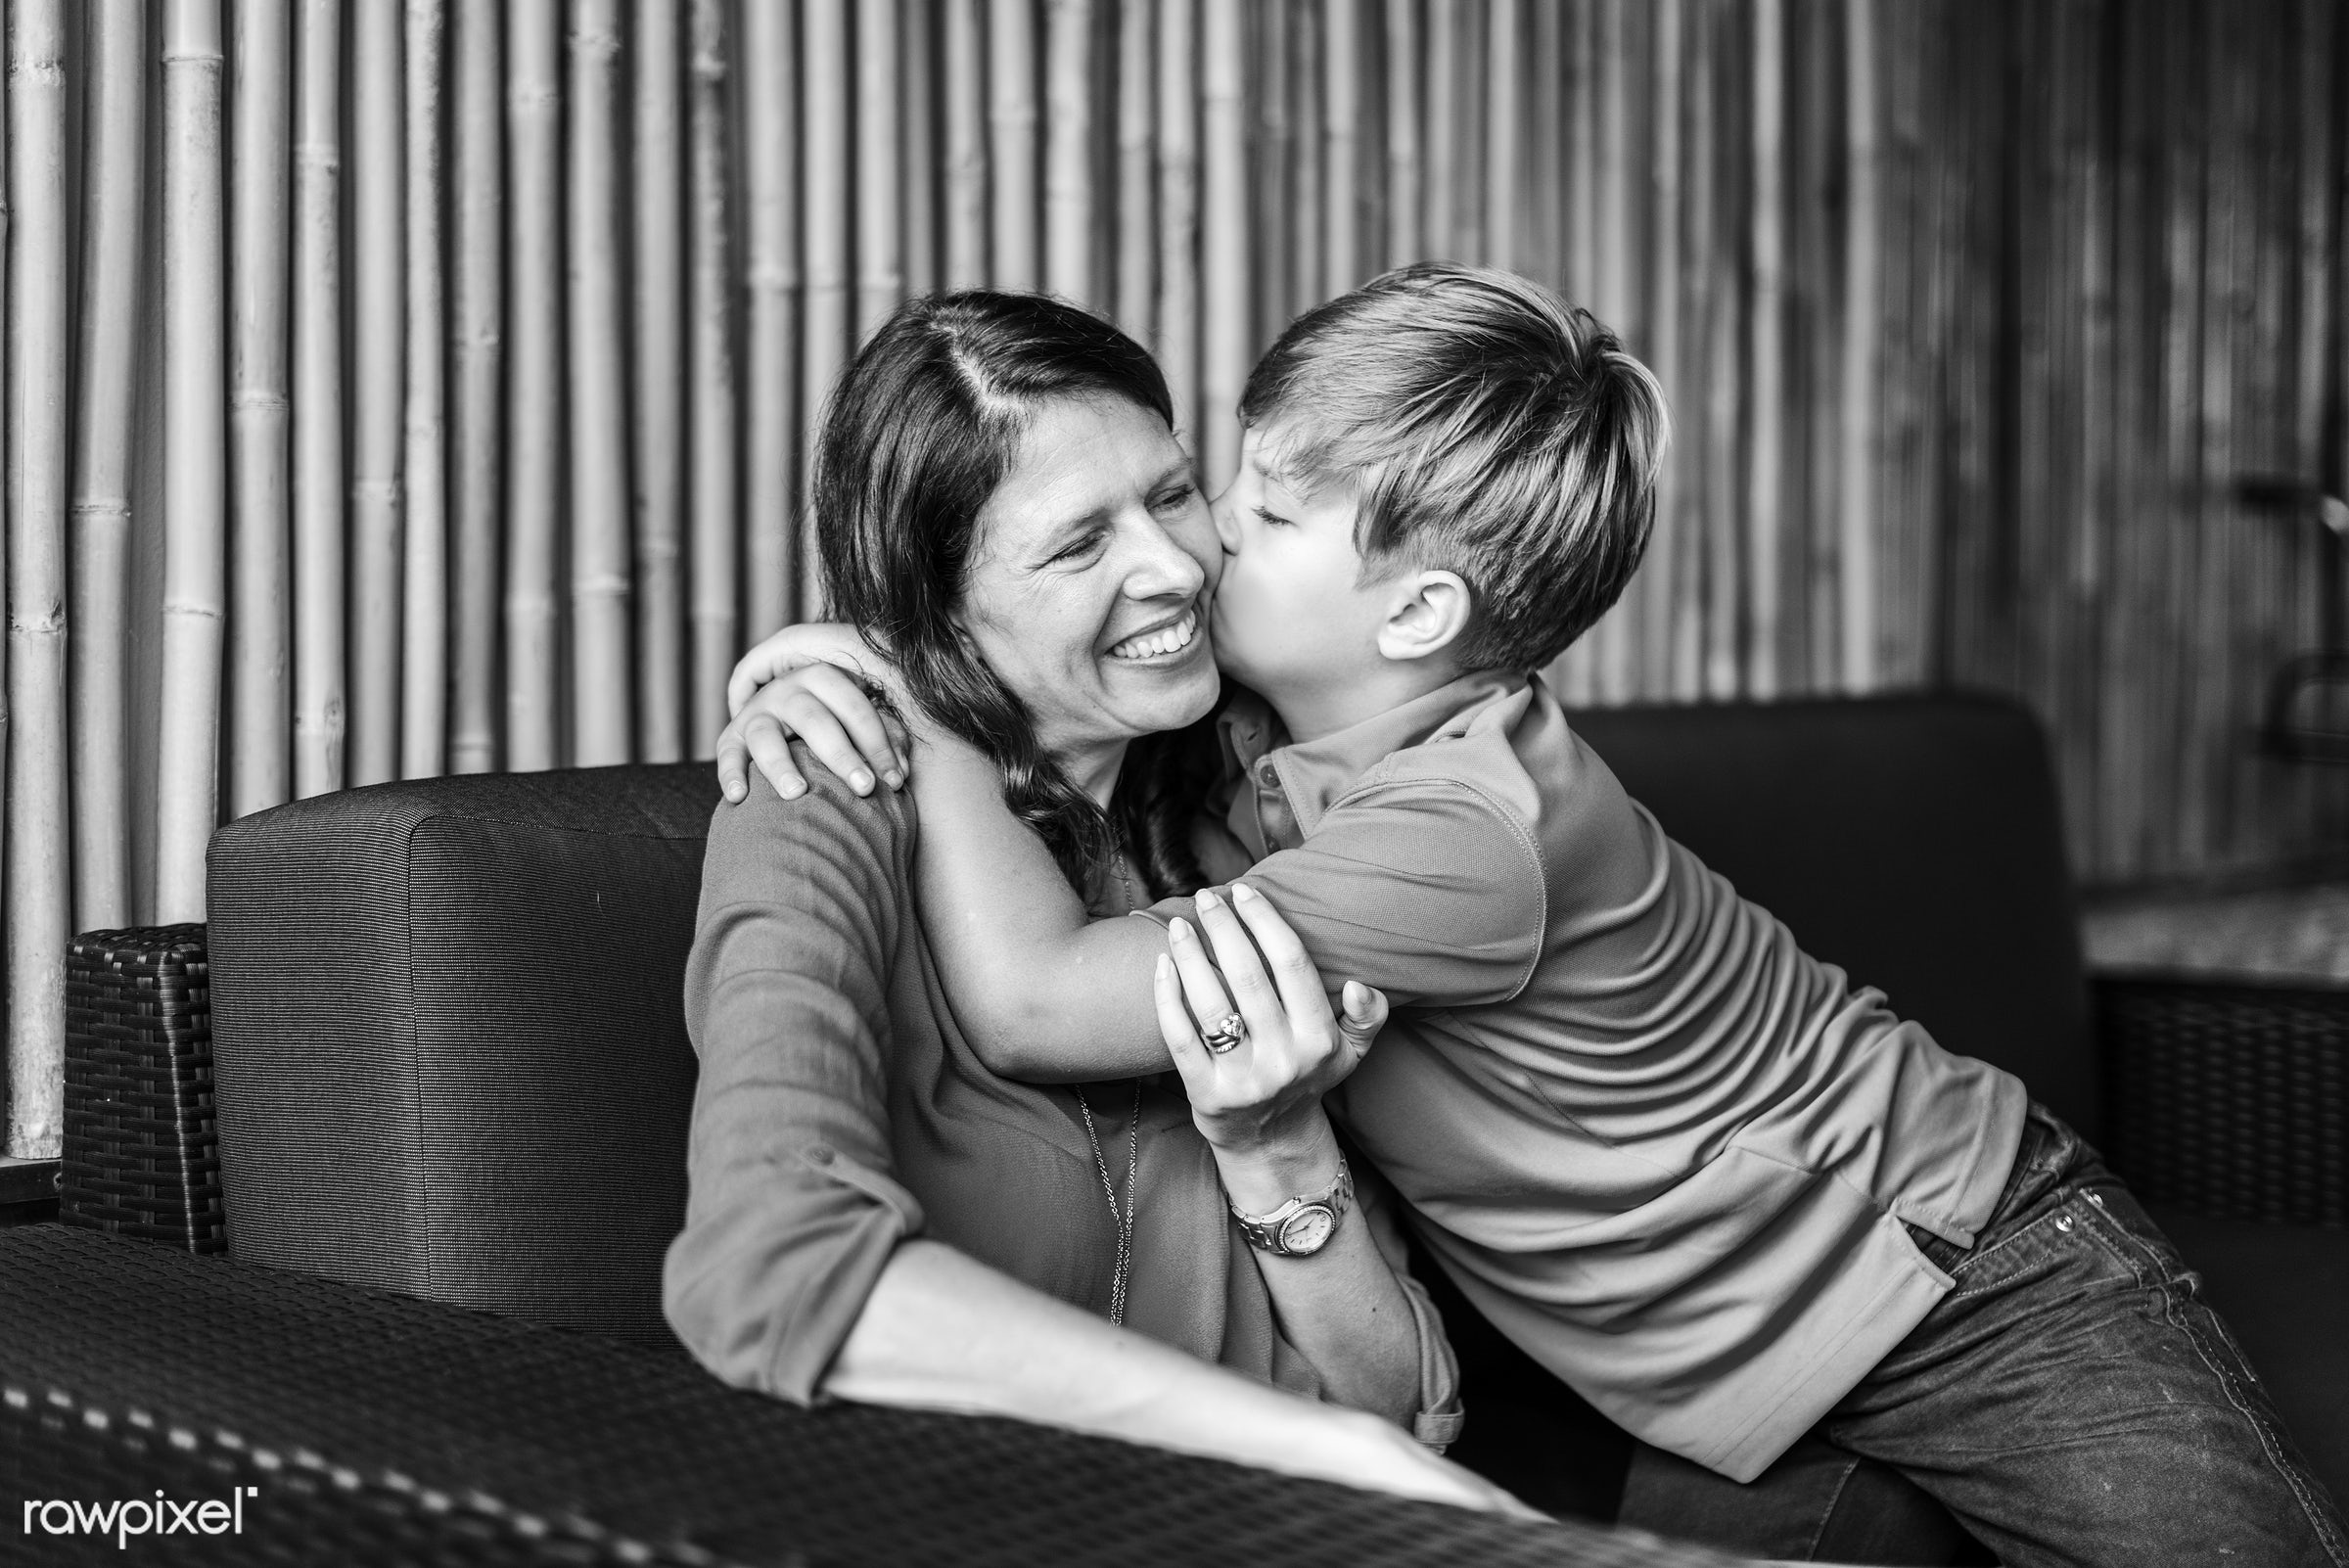 Daily lifestyle of caucasian family shoot - mom, adore, boy, cheerful, child, enjoy, family, fondness, happiness, home,...